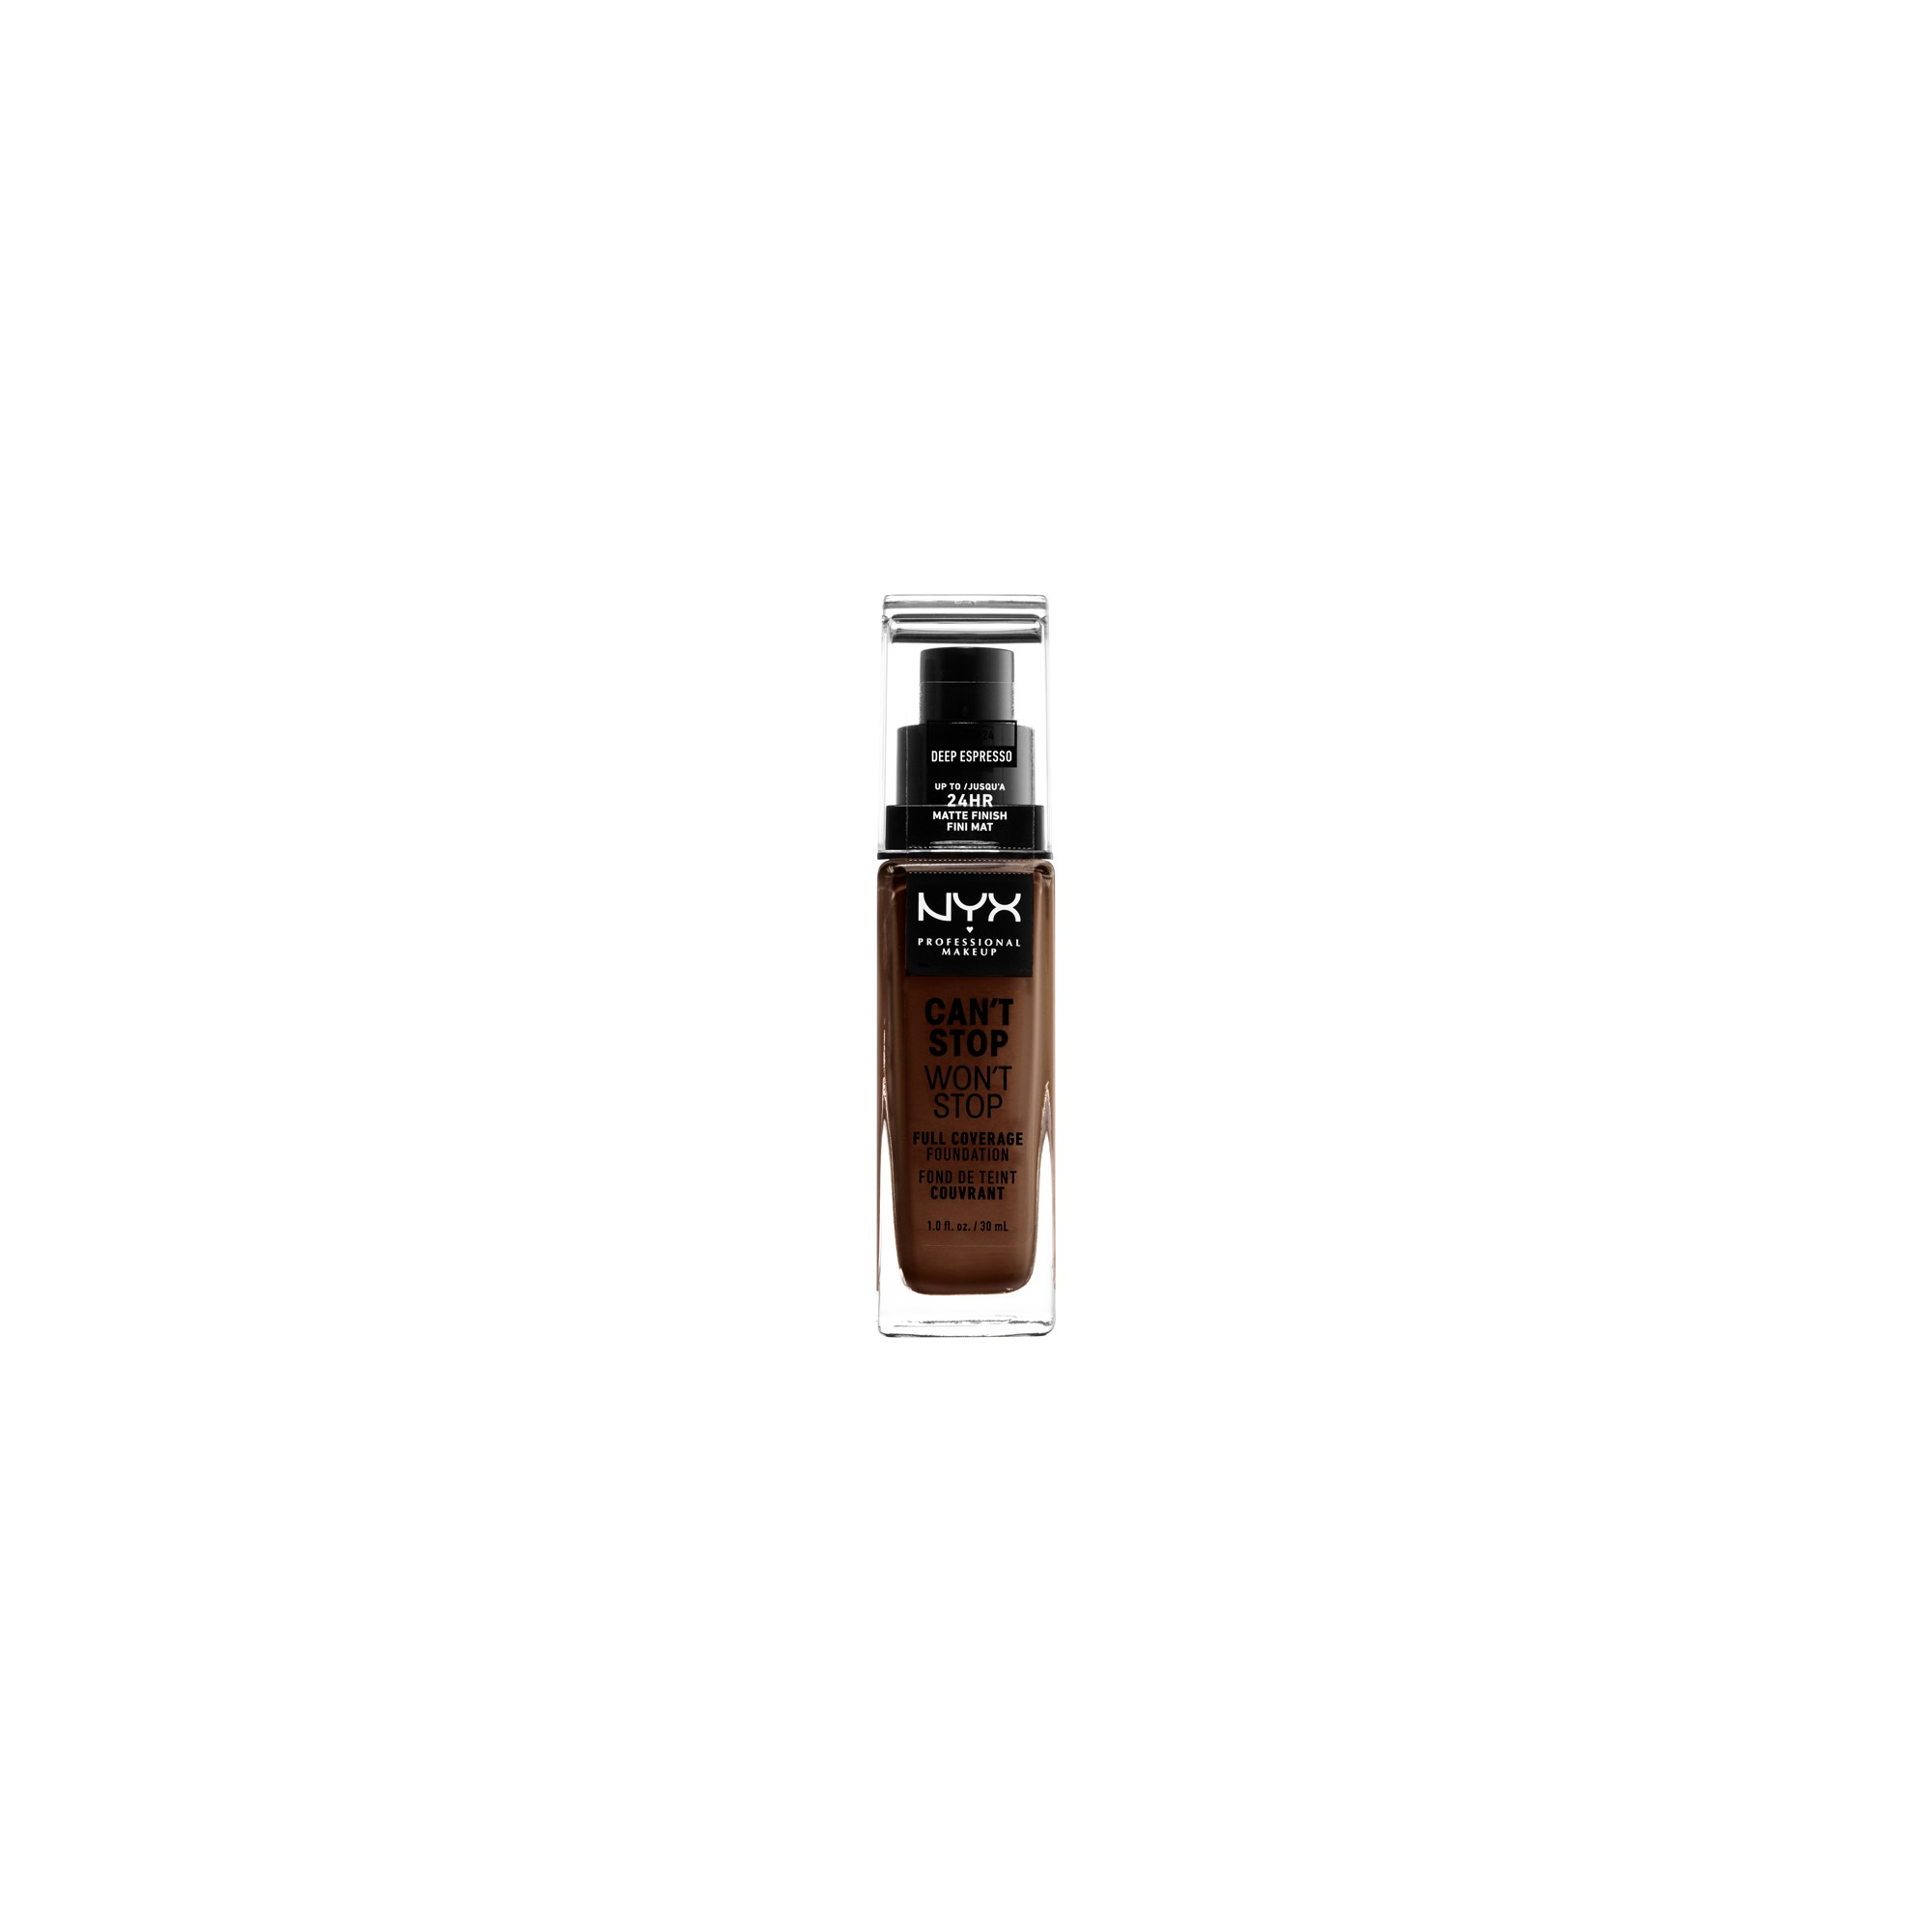 Nyx Professional Makeup Can't Stop Won't Stop Full Coverage Foundation Deep Espresso - 1.3 fl oz